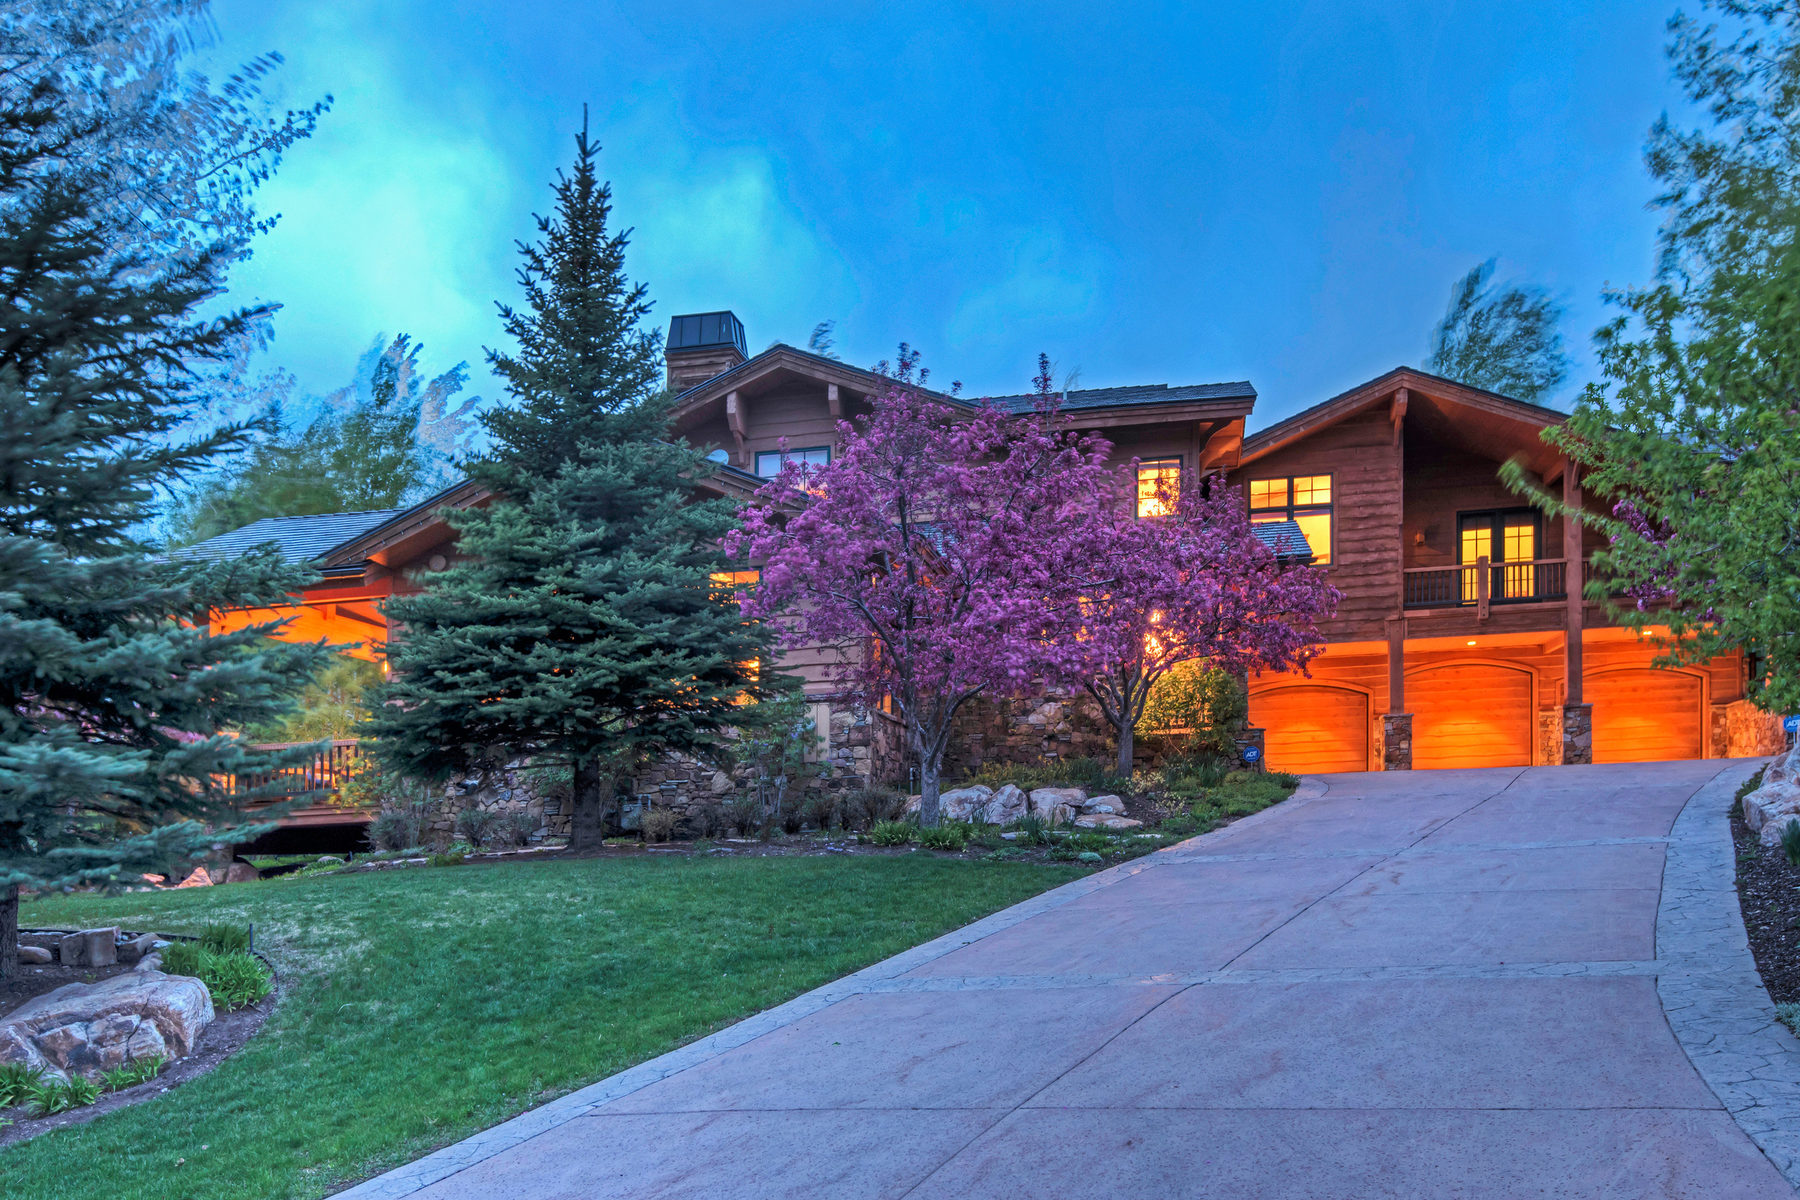 Single Family Home for Sale at An Entertainer's Dream in Fairway Hills 2485 Silver Cloud Dr Lot 17 Park City, Utah, 84060 United States